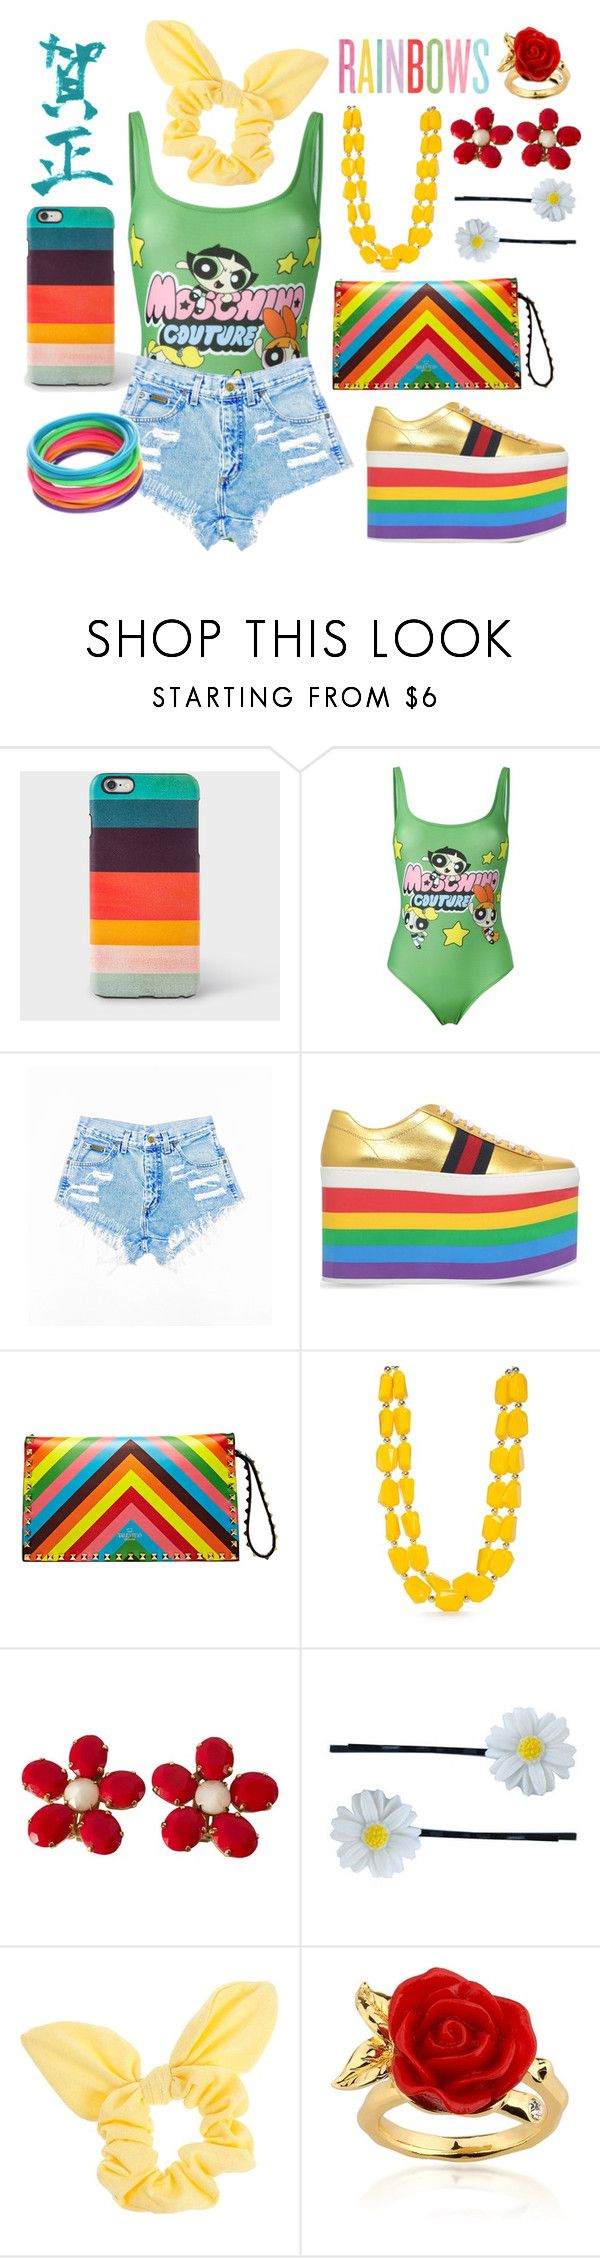 """Power Puff Girls Suit"" by mongryong ❤ liked on Polyvore featuring Paul Smith, Moschino, Gucci, Valentino, Kim Rogers, Schreiner, Clips, Dorothy Perkins and Disney"